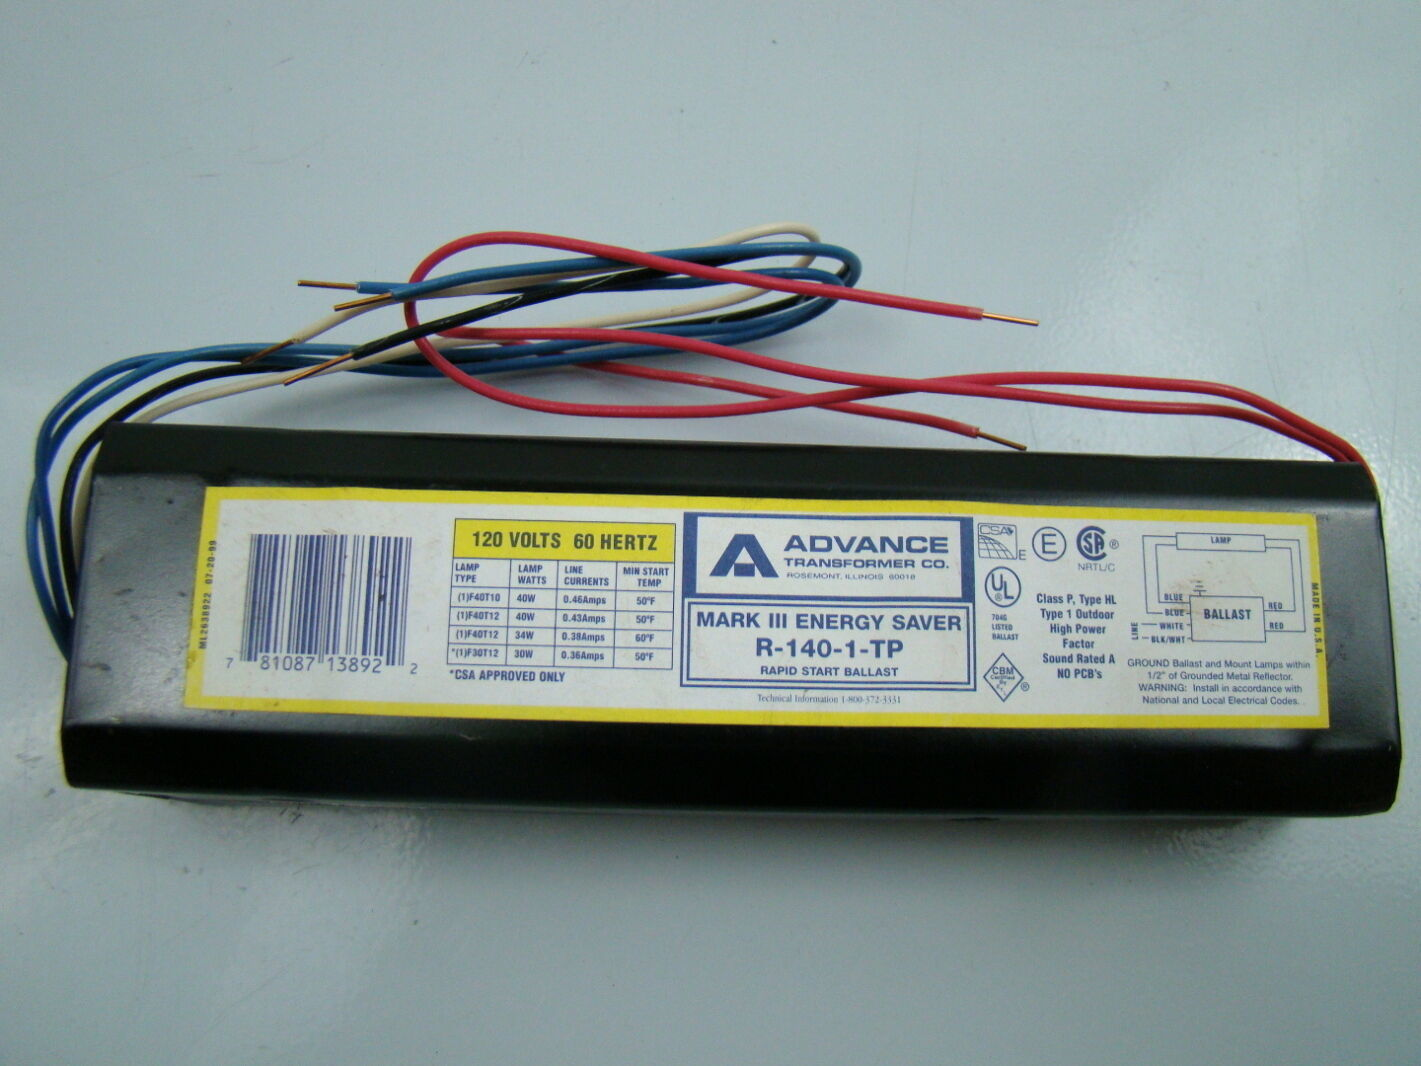 Details about Advance F40t10 Ballast Mark III Energy Saver 120V 60H R-140-1-TP